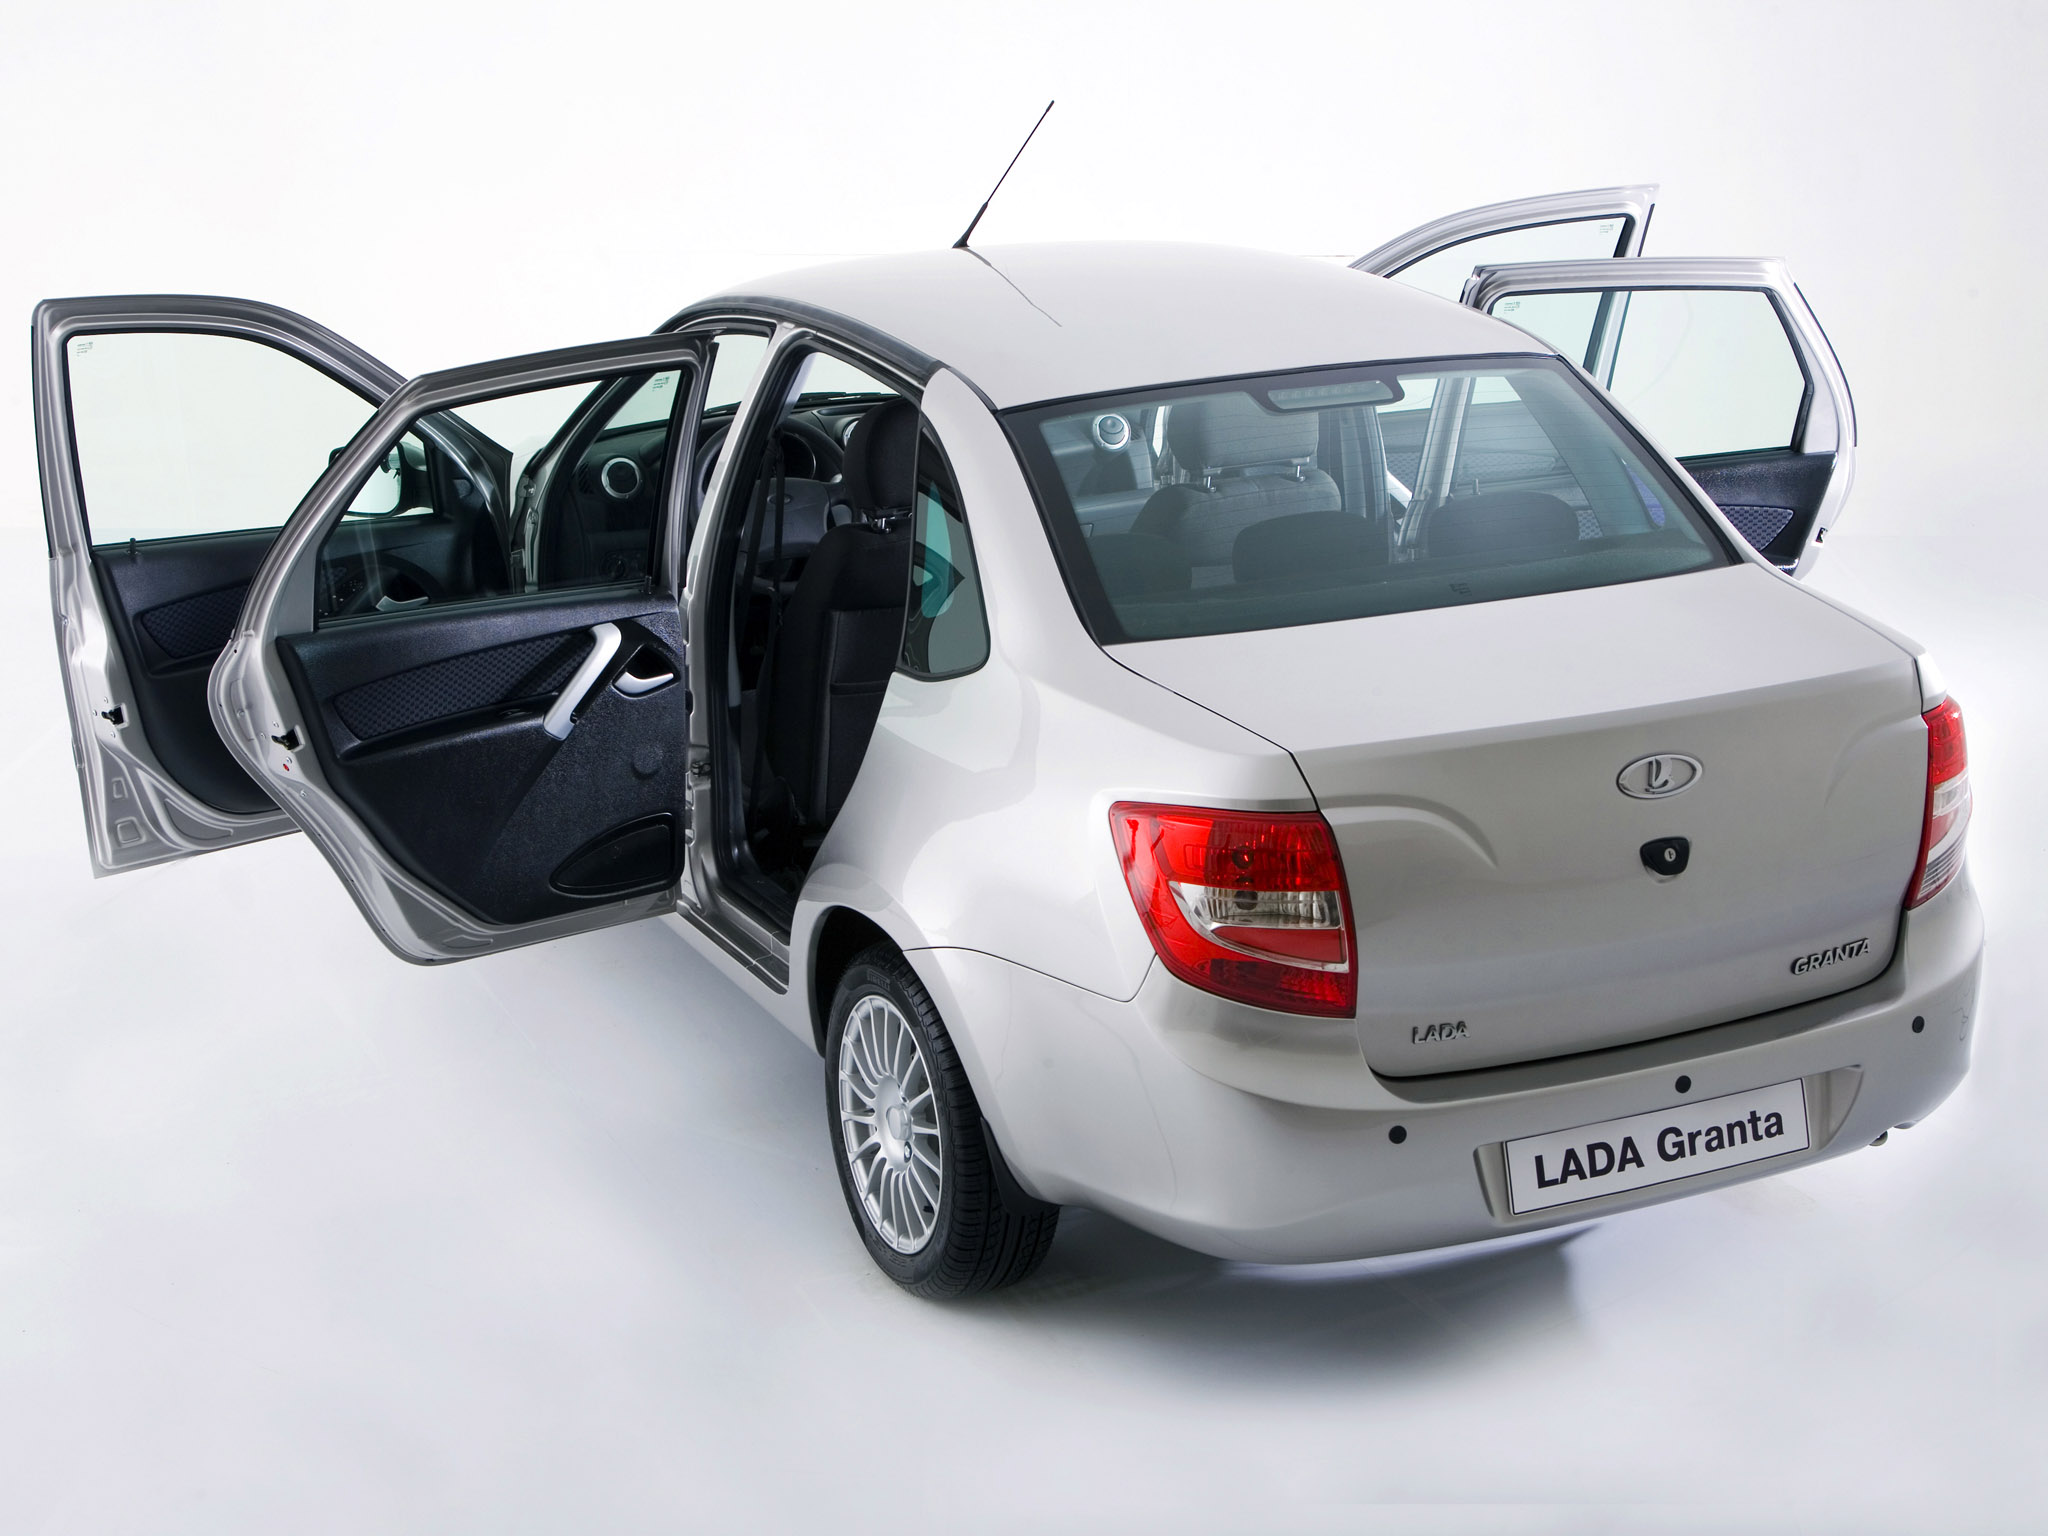 lada granta 2190 2011 lada granta 2190 2011 photo 01 car in pictures car photo gallery. Black Bedroom Furniture Sets. Home Design Ideas